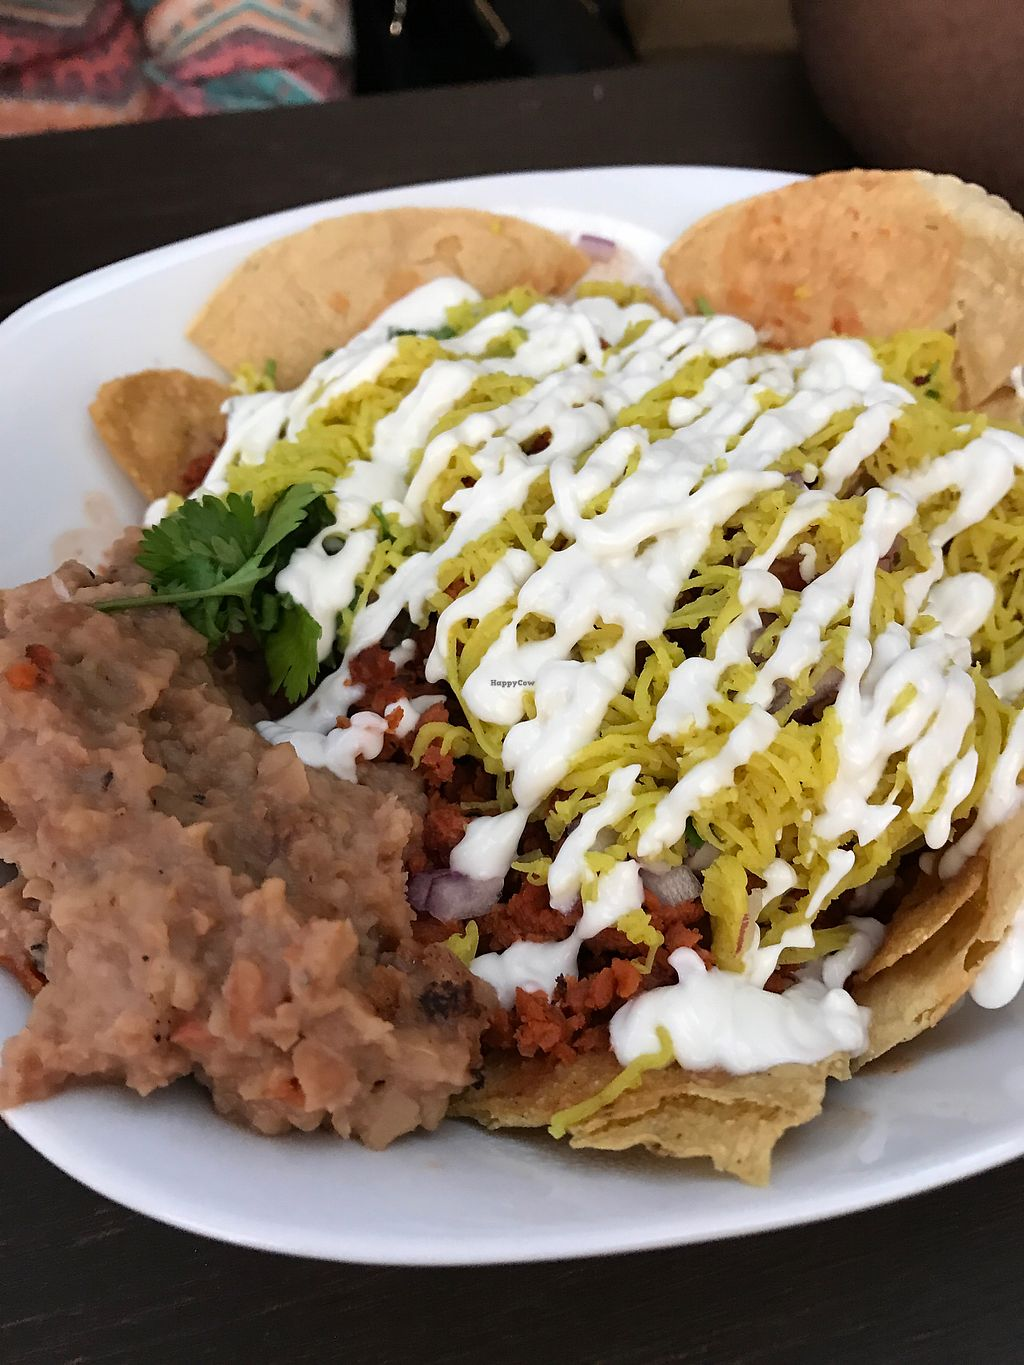 "Photo of VegAmo MX  by <a href=""/members/profile/KrsMnz"">KrsMnz</a> <br/>chilaquiles, yum <br/> August 18, 2017  - <a href='/contact/abuse/image/69913/294049'>Report</a>"